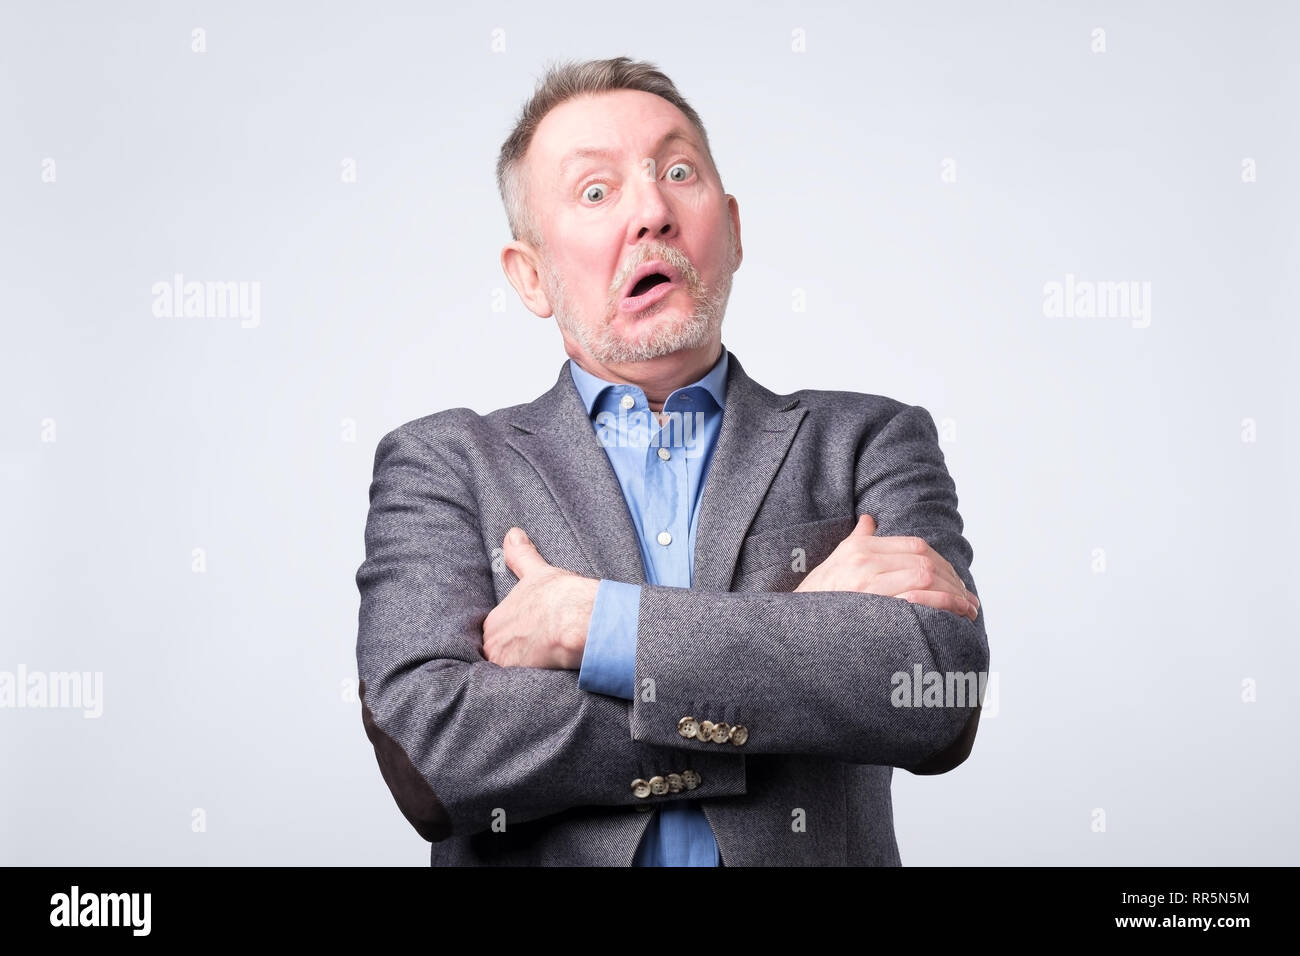 Senior man in suit is puzzled and confused musing about business problems. - Stock Image